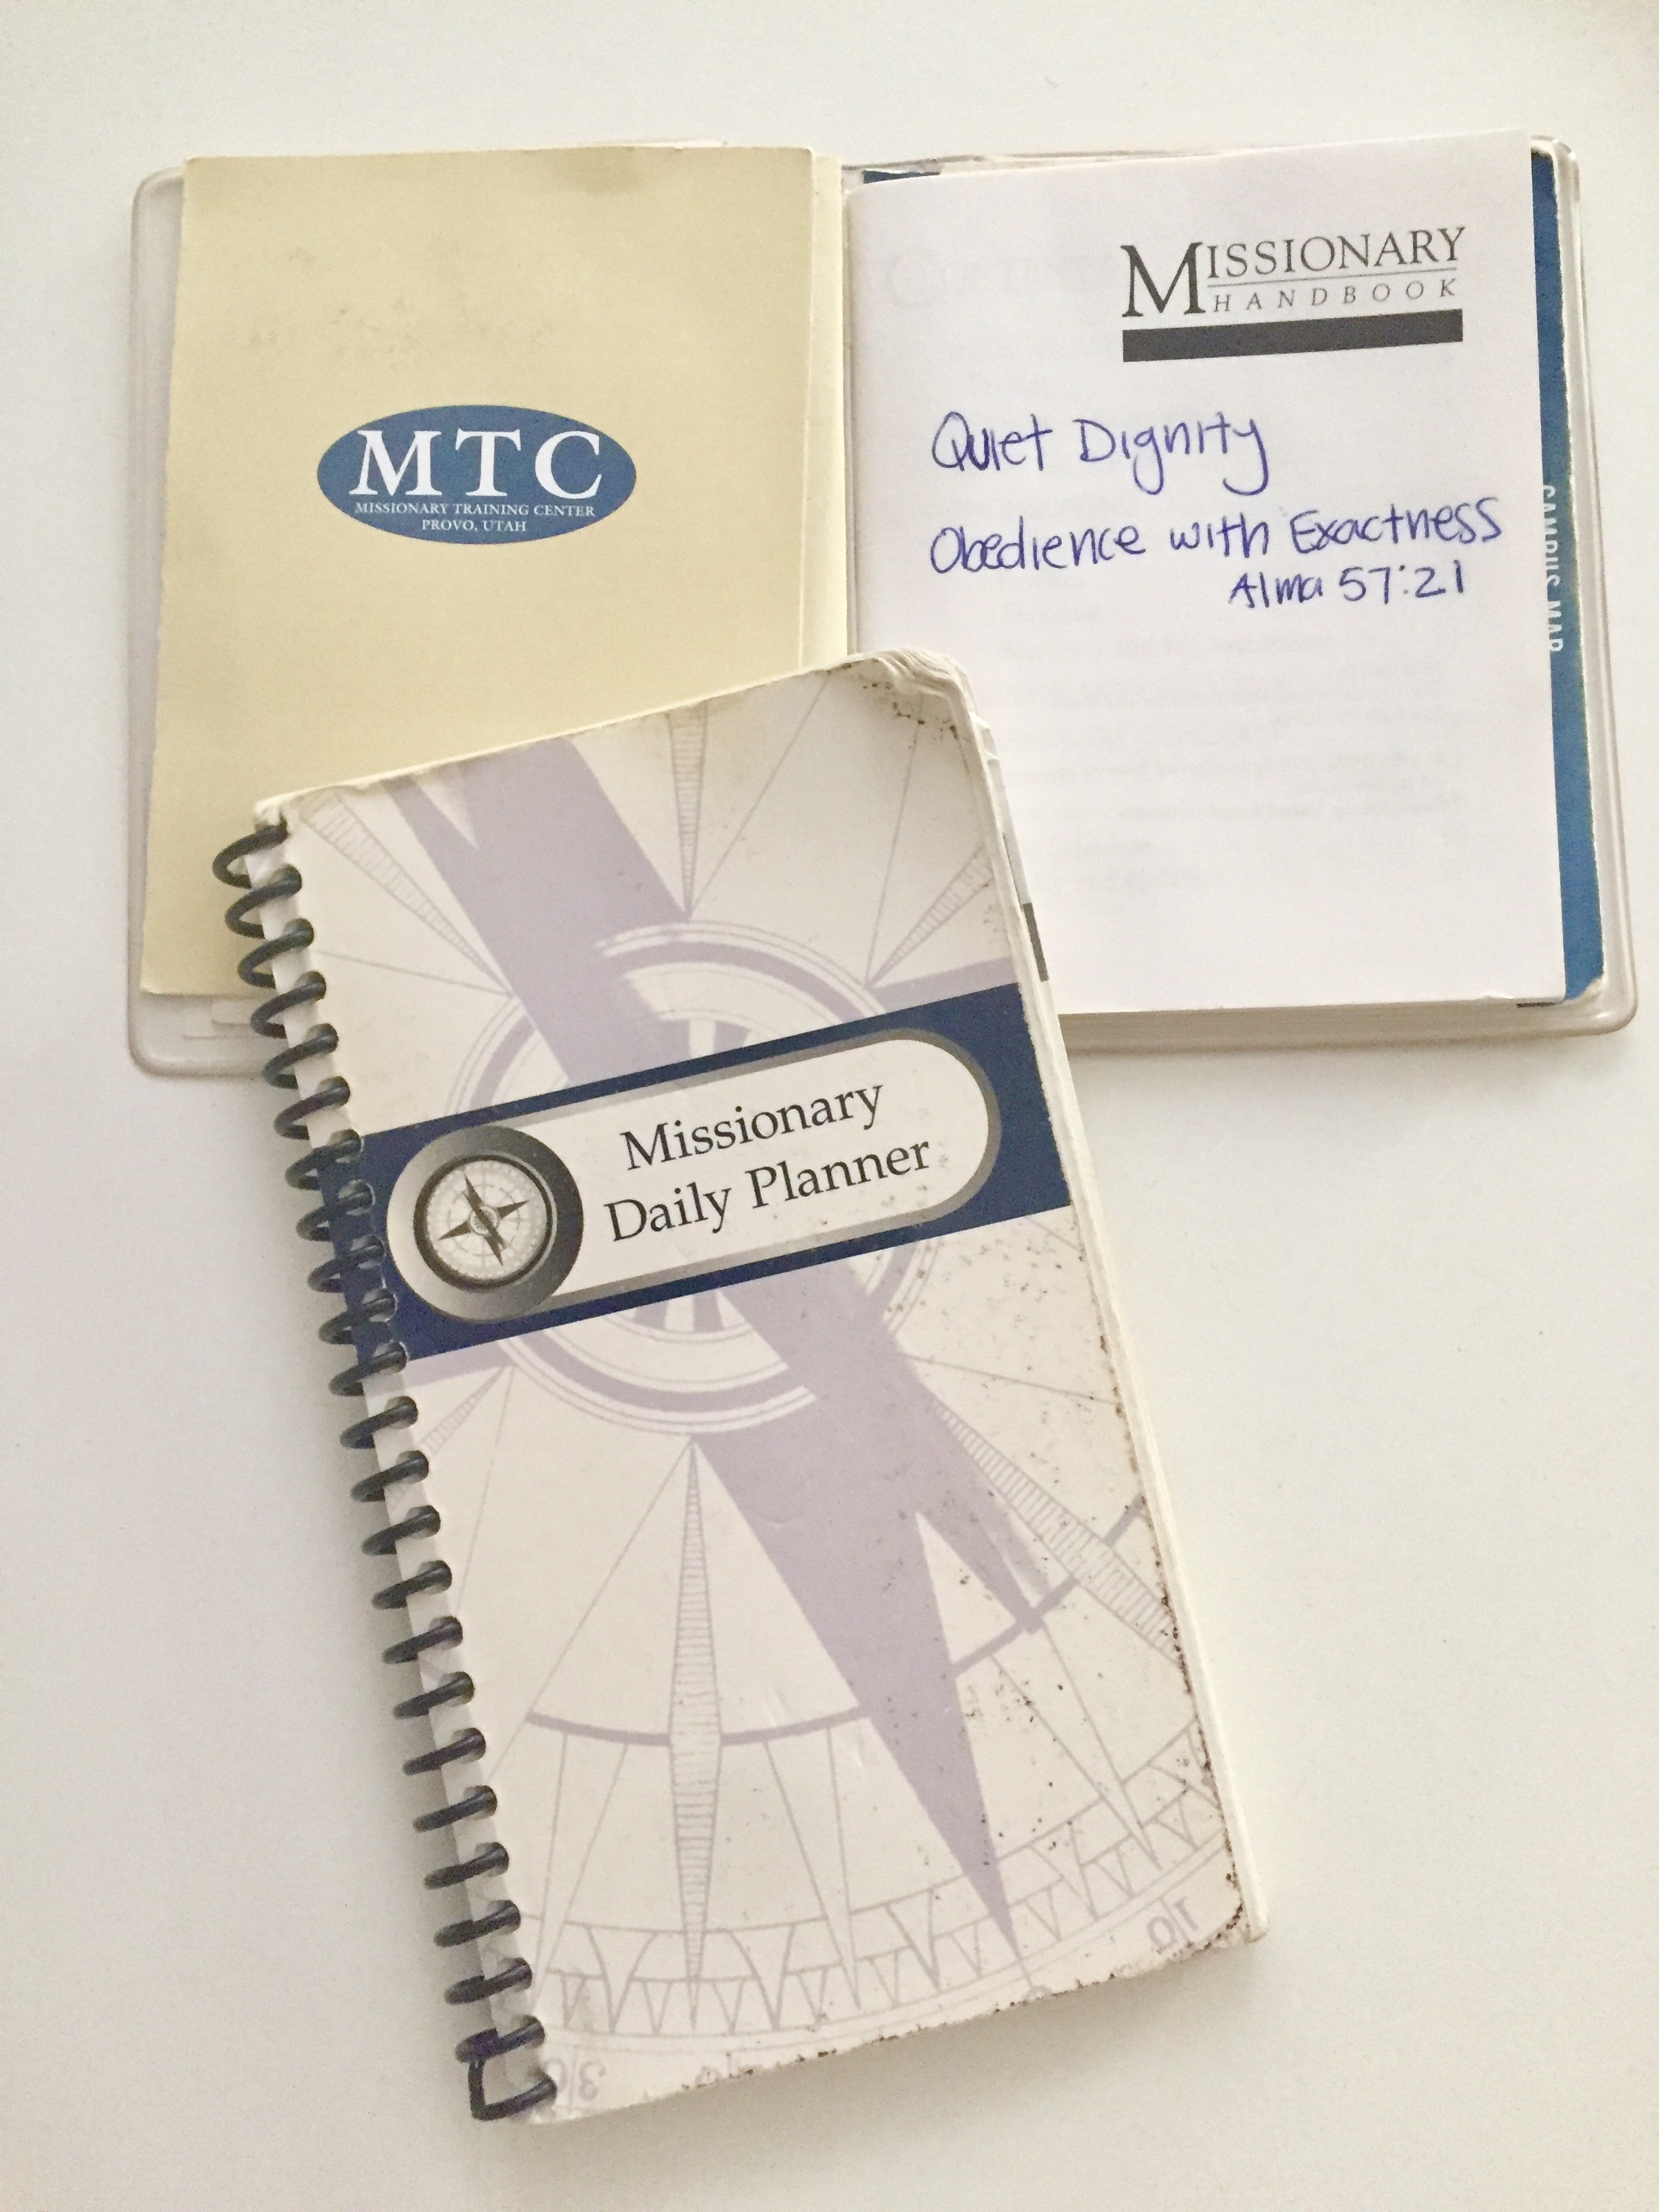 One of our daily planner books that we used to coordinate every minute of our day. Also the white handbook which contained all the rules for missionaries across the Church.